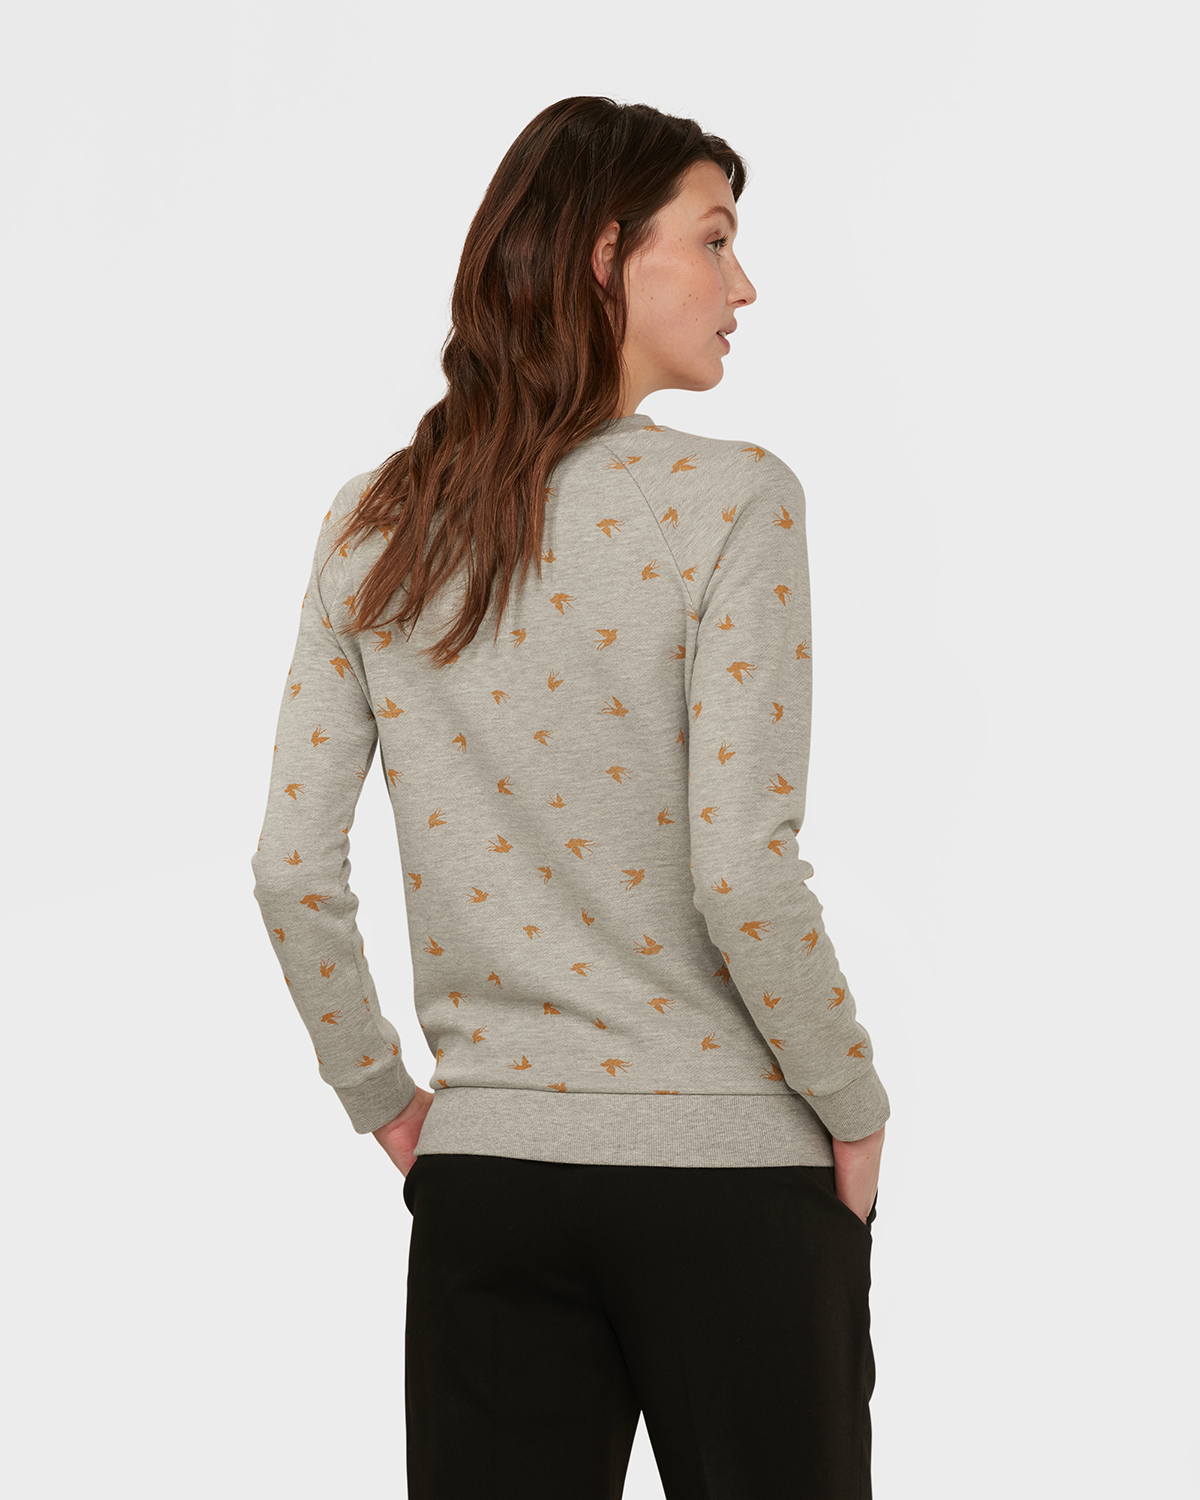 Dames Trui Met Print.Dames Bird Print Sweater 79766852 We Fashion